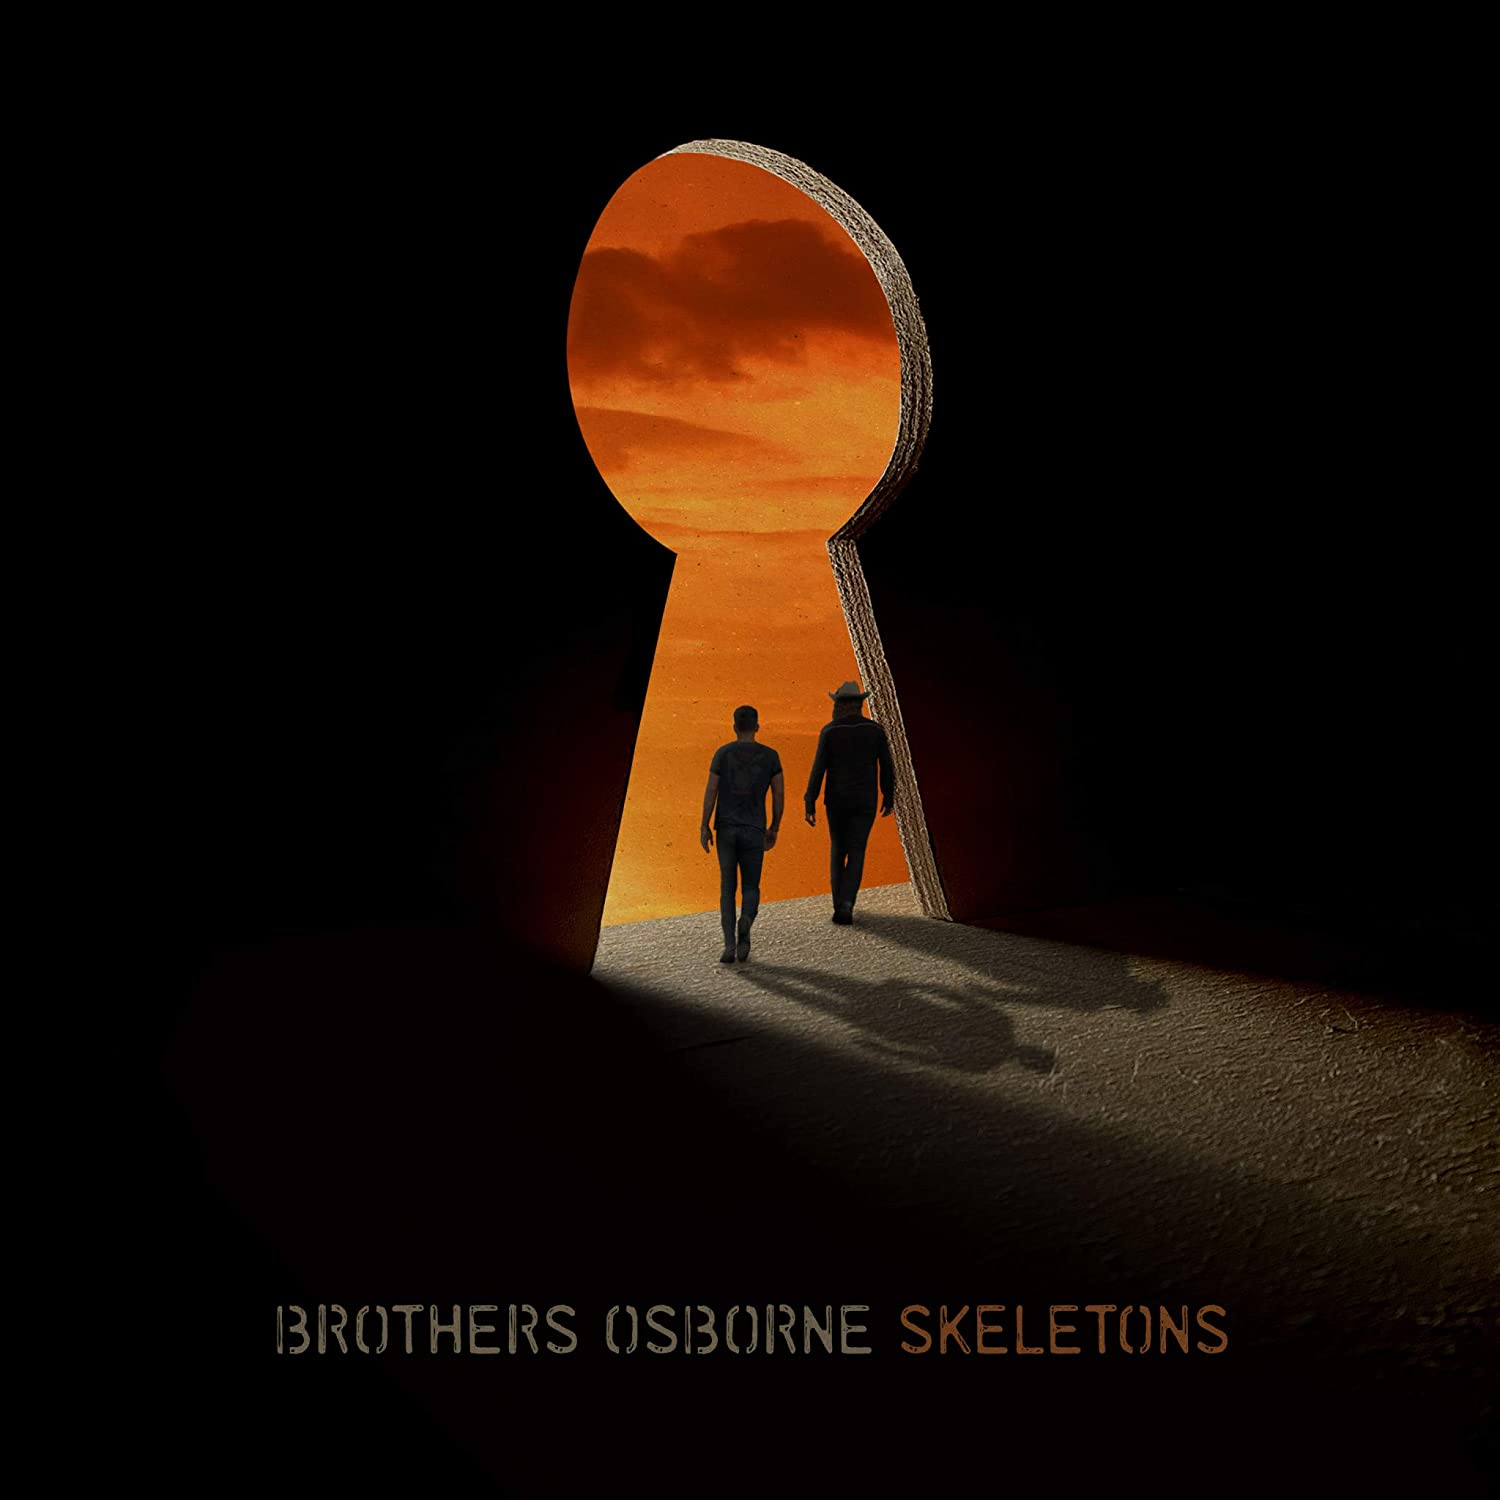 Brothers Osborne - Skeletons [LP] (White Vinyl, slip mat, limited, indie-retail exclusive)